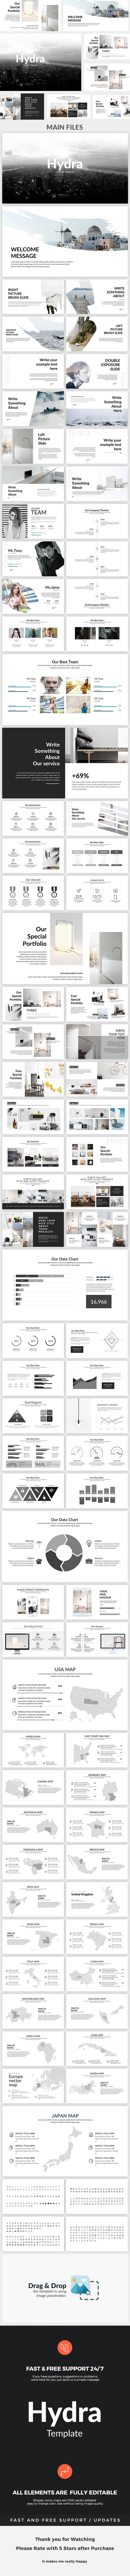 Hydra - Creative Powerpoint Template. Download here: https://graphicriver.net/item/hydra-creative-powerpoint-template/17113213?ref=ksioks